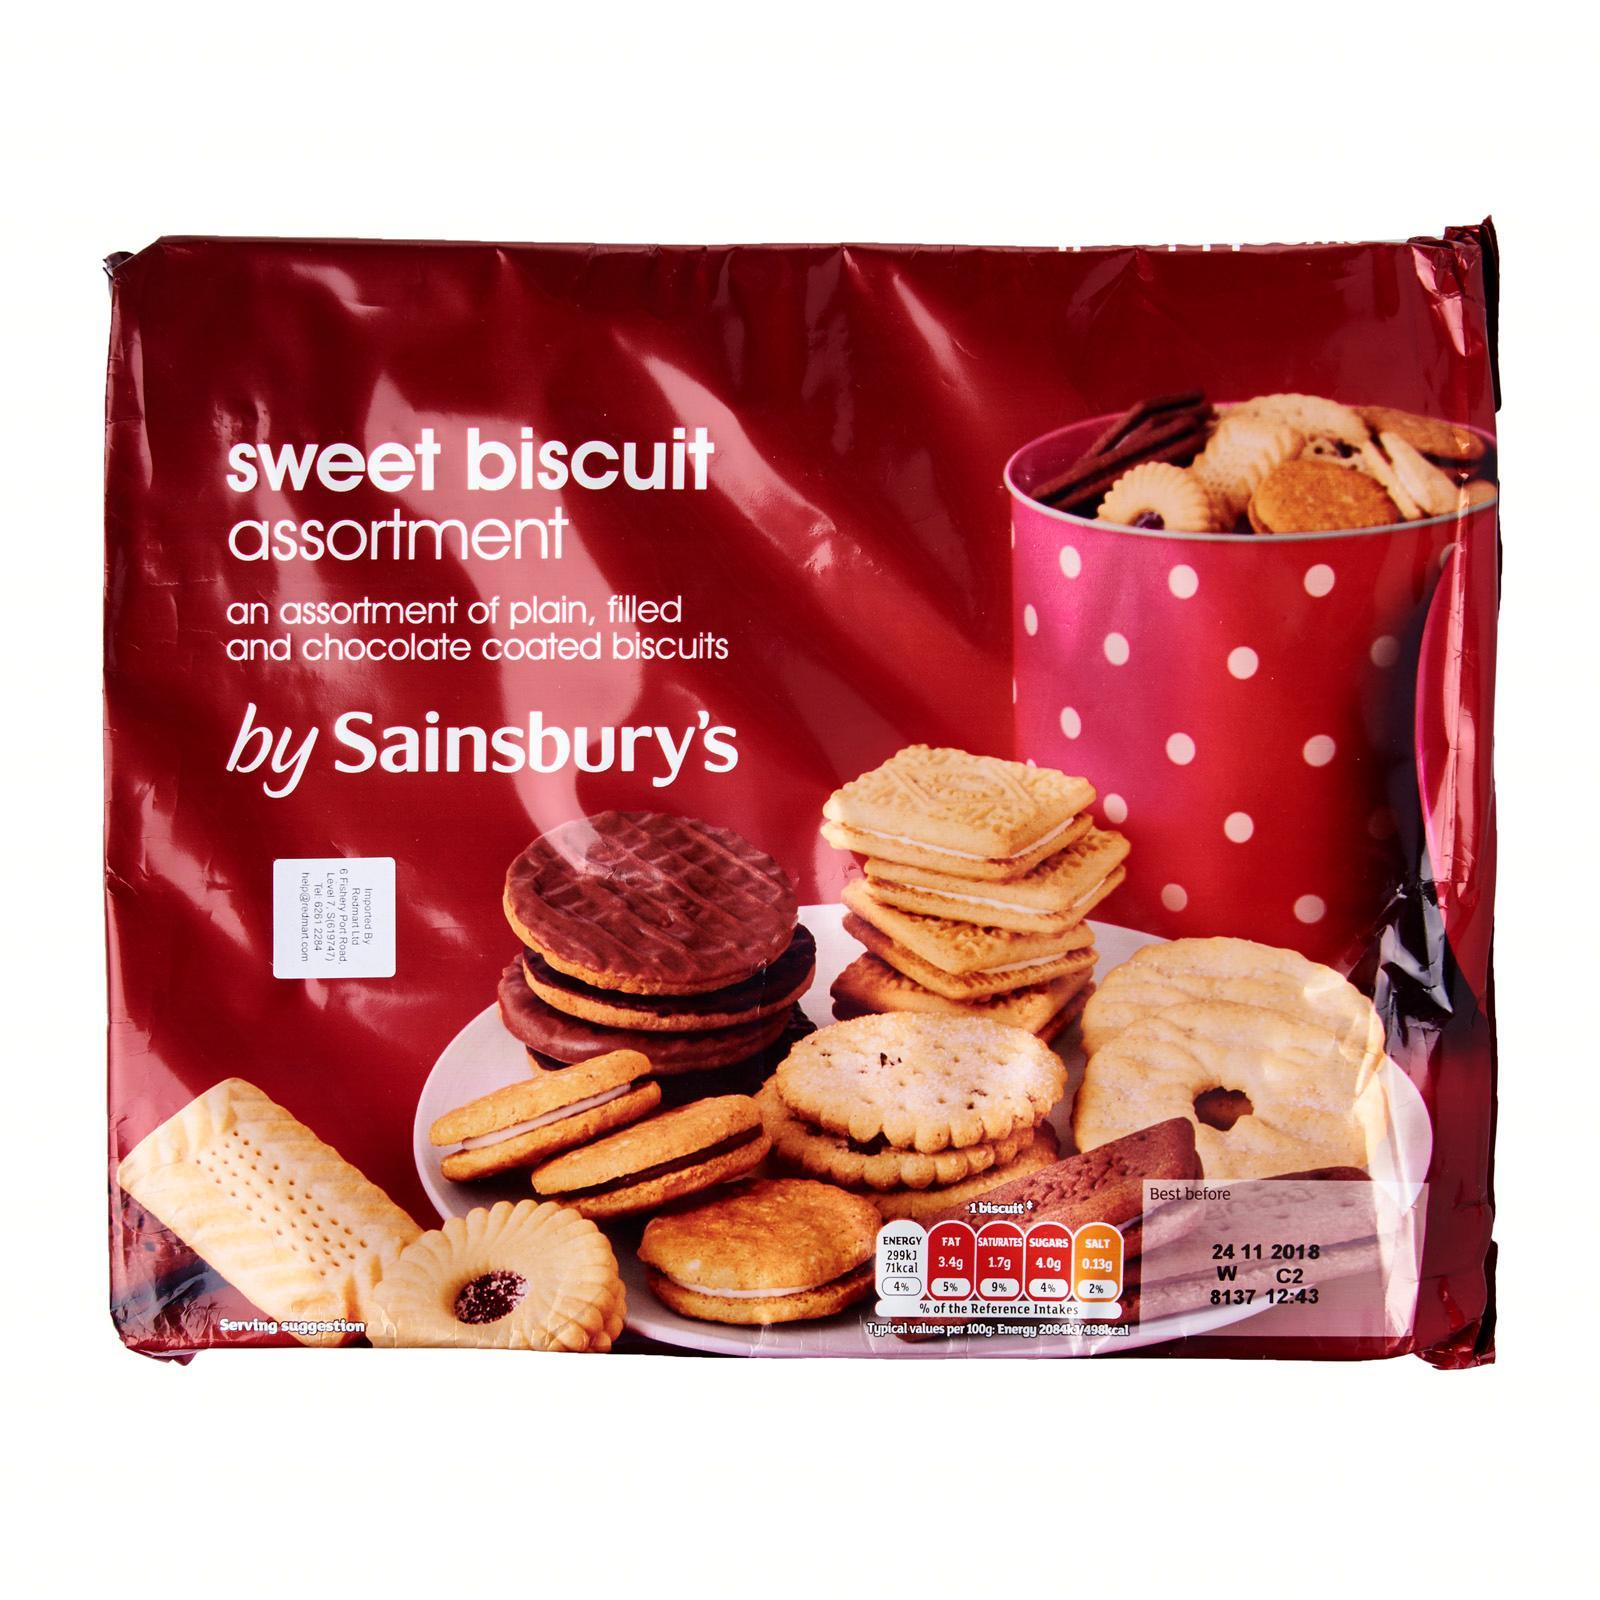 Sainsbury's Biscuits Assortment